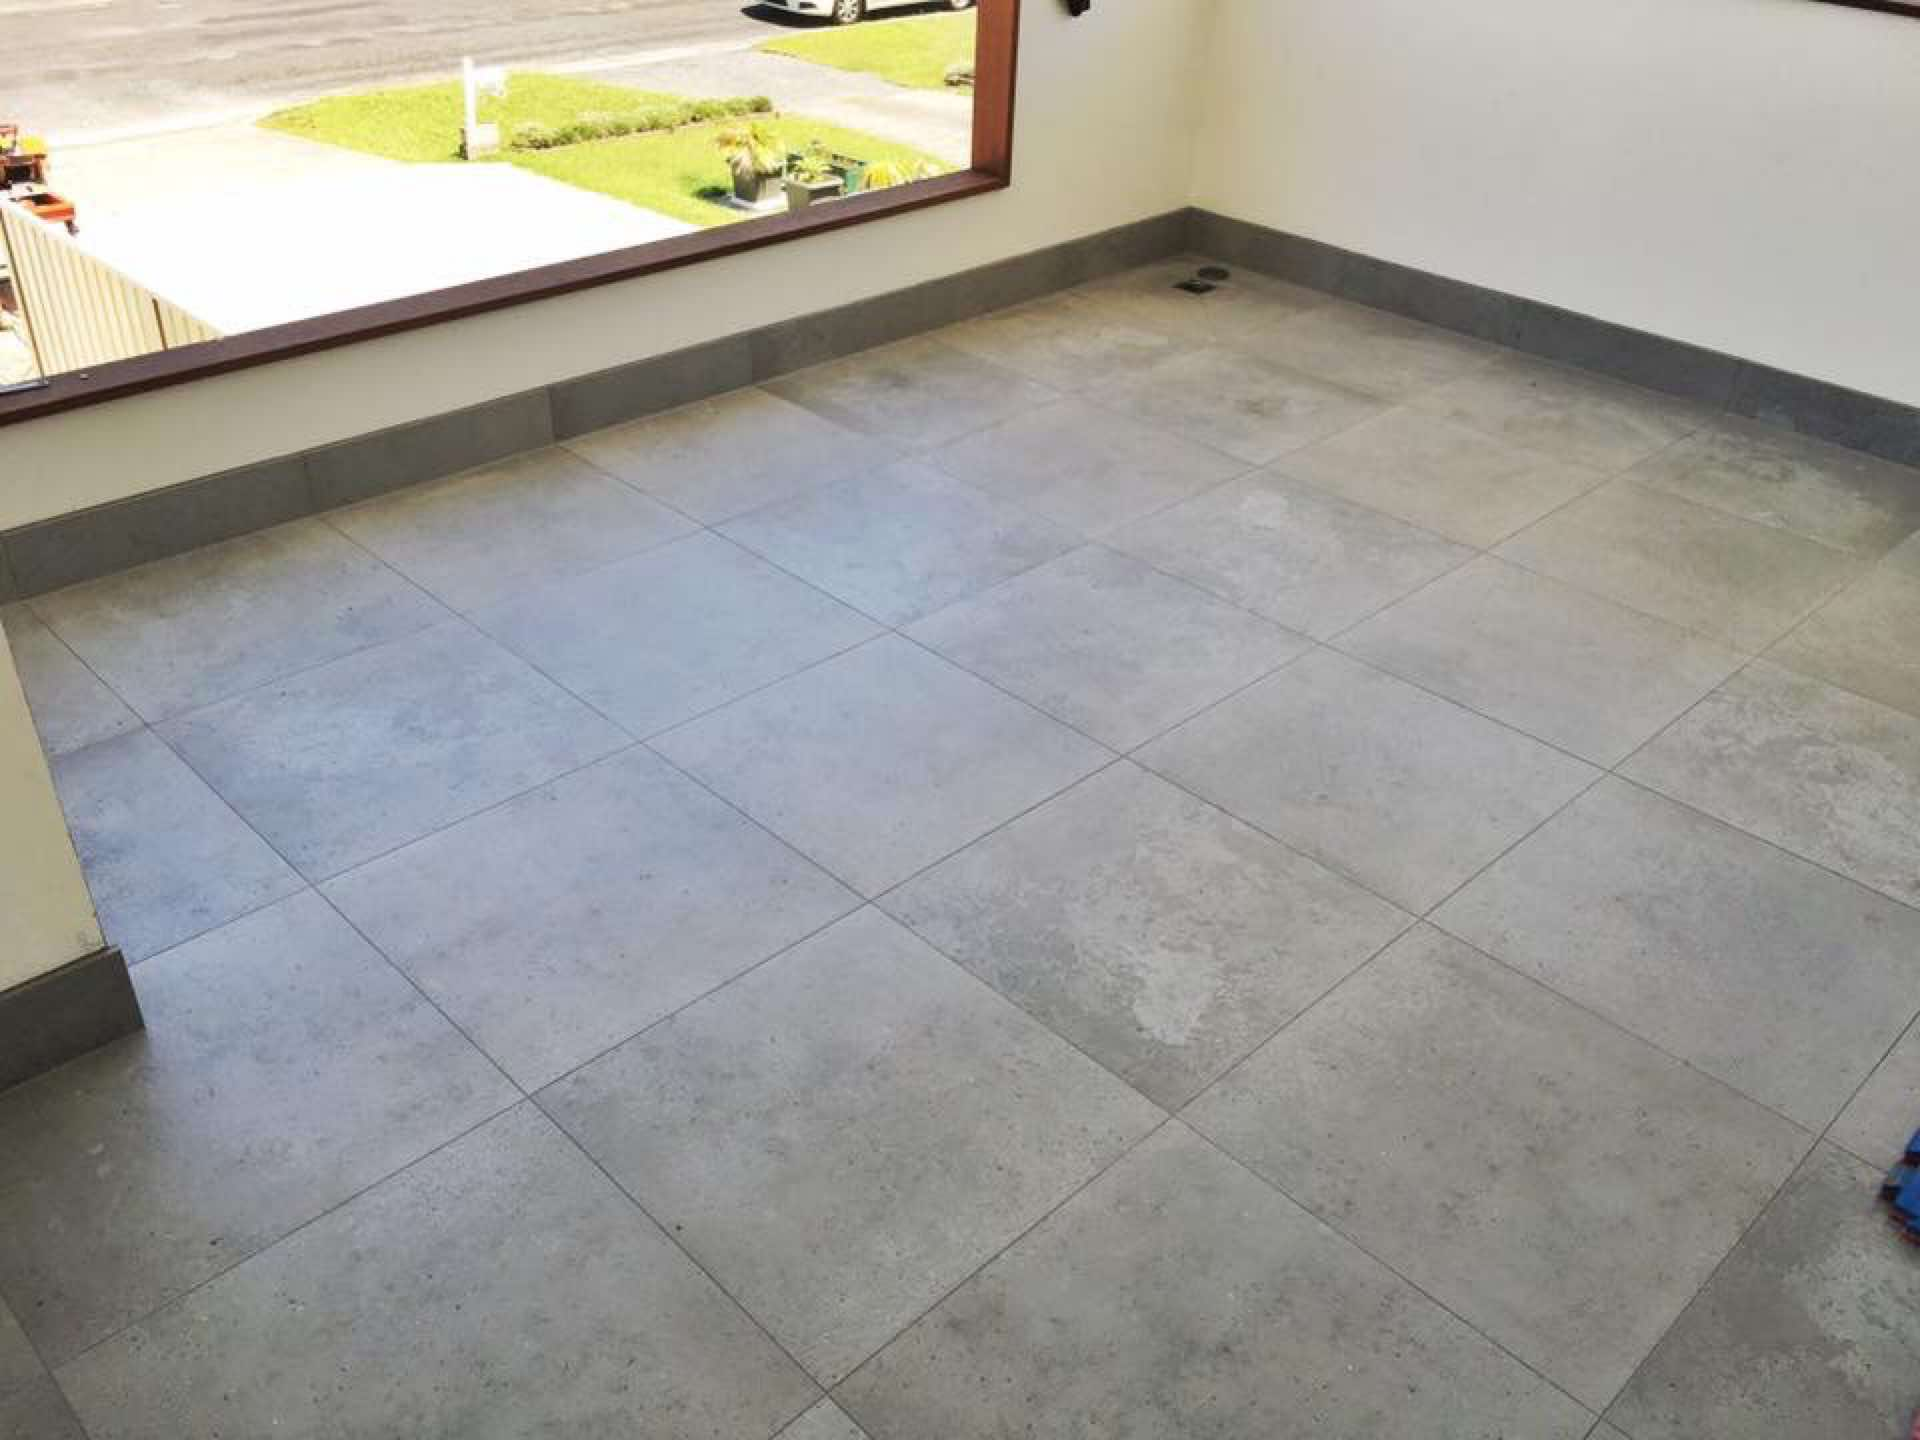 Evoke wall and floor tiling josh househam 5 projects 600x600 porcelain polished concrete look tile killarney vale nsw dailygadgetfo Gallery